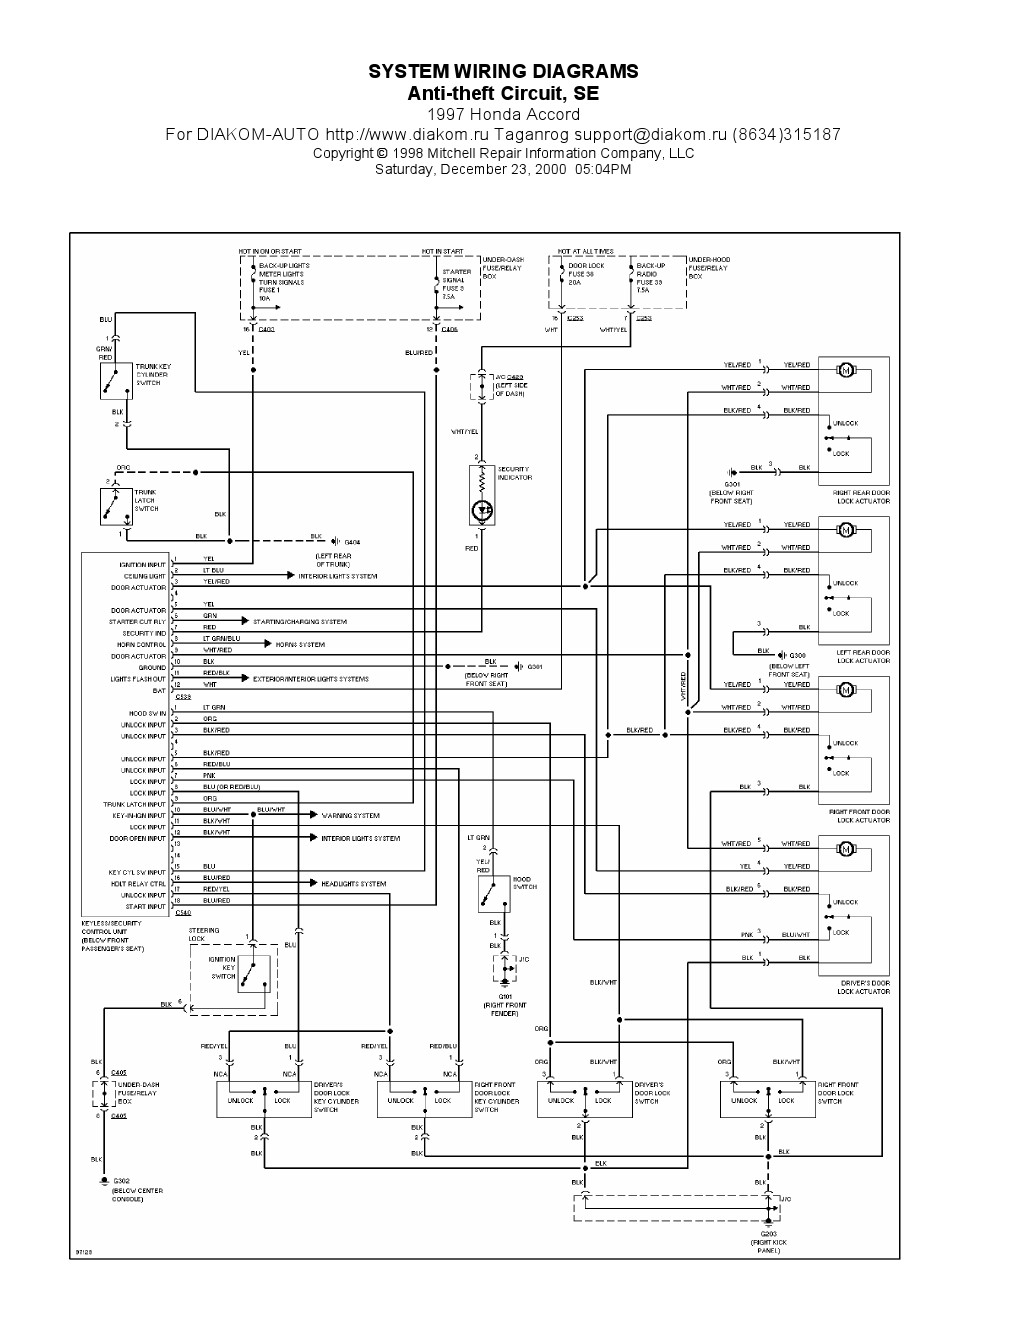 Peachy 97 Honda Wiring Diagram Basic Electronics Wiring Diagram Wiring Digital Resources Ntnesshebarightsorg